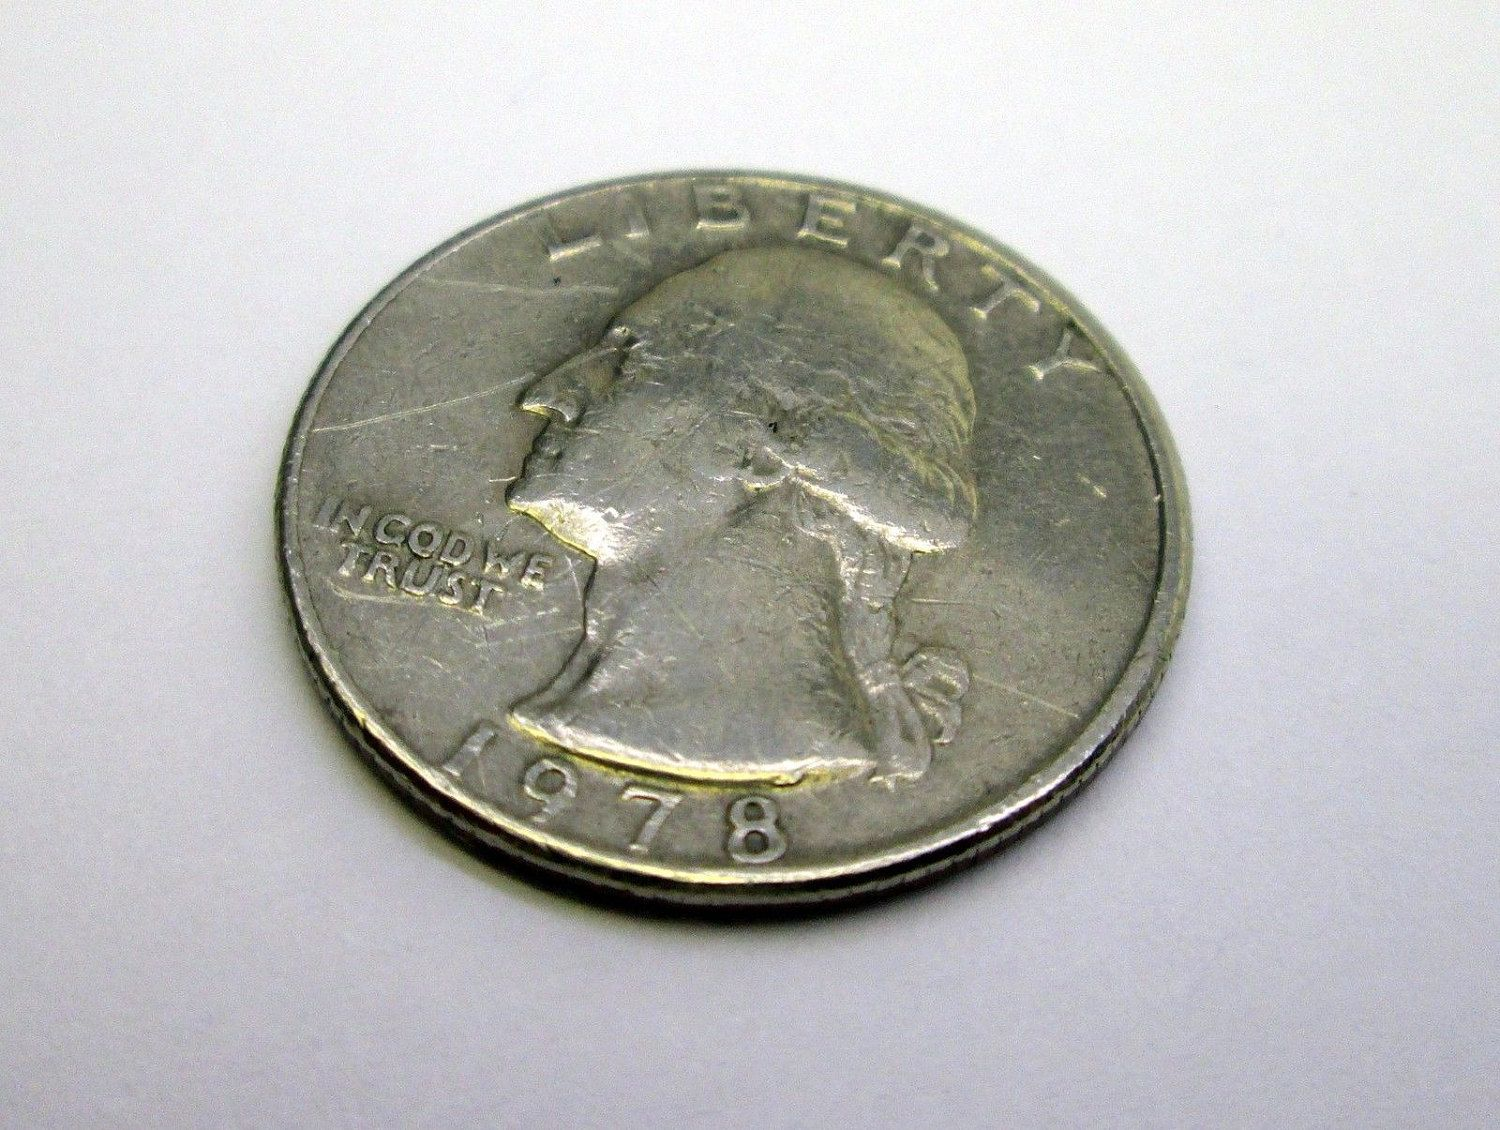 1978 US Washington Quarter 25 cent coin USA American currency - EF